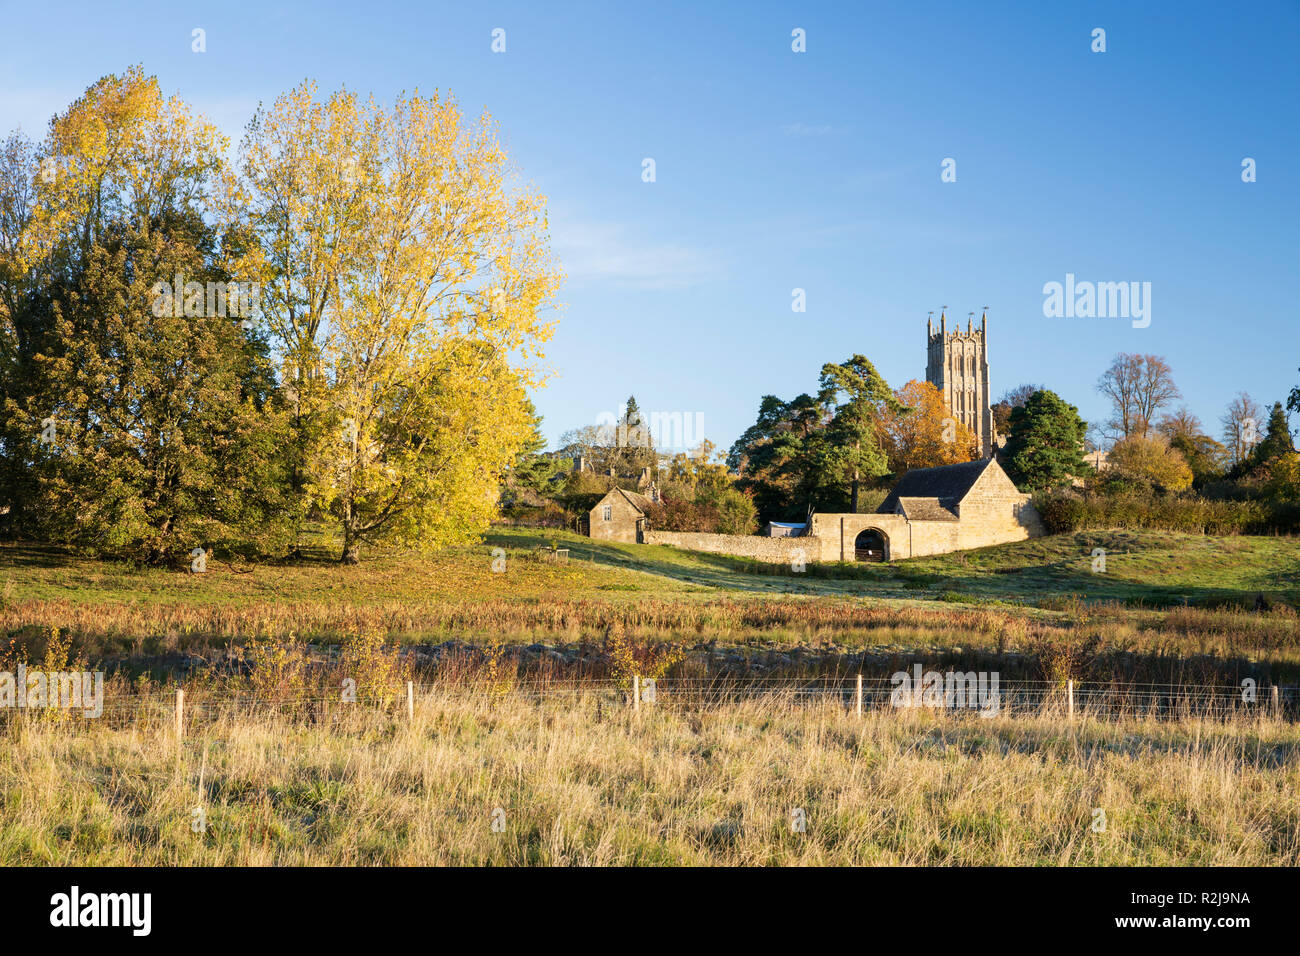 St James' church in morning sunlight with autumn trees, Chipping Campden, Cotswolds, Gloucestershire, England, United Kingdom, Europe Stock Photo